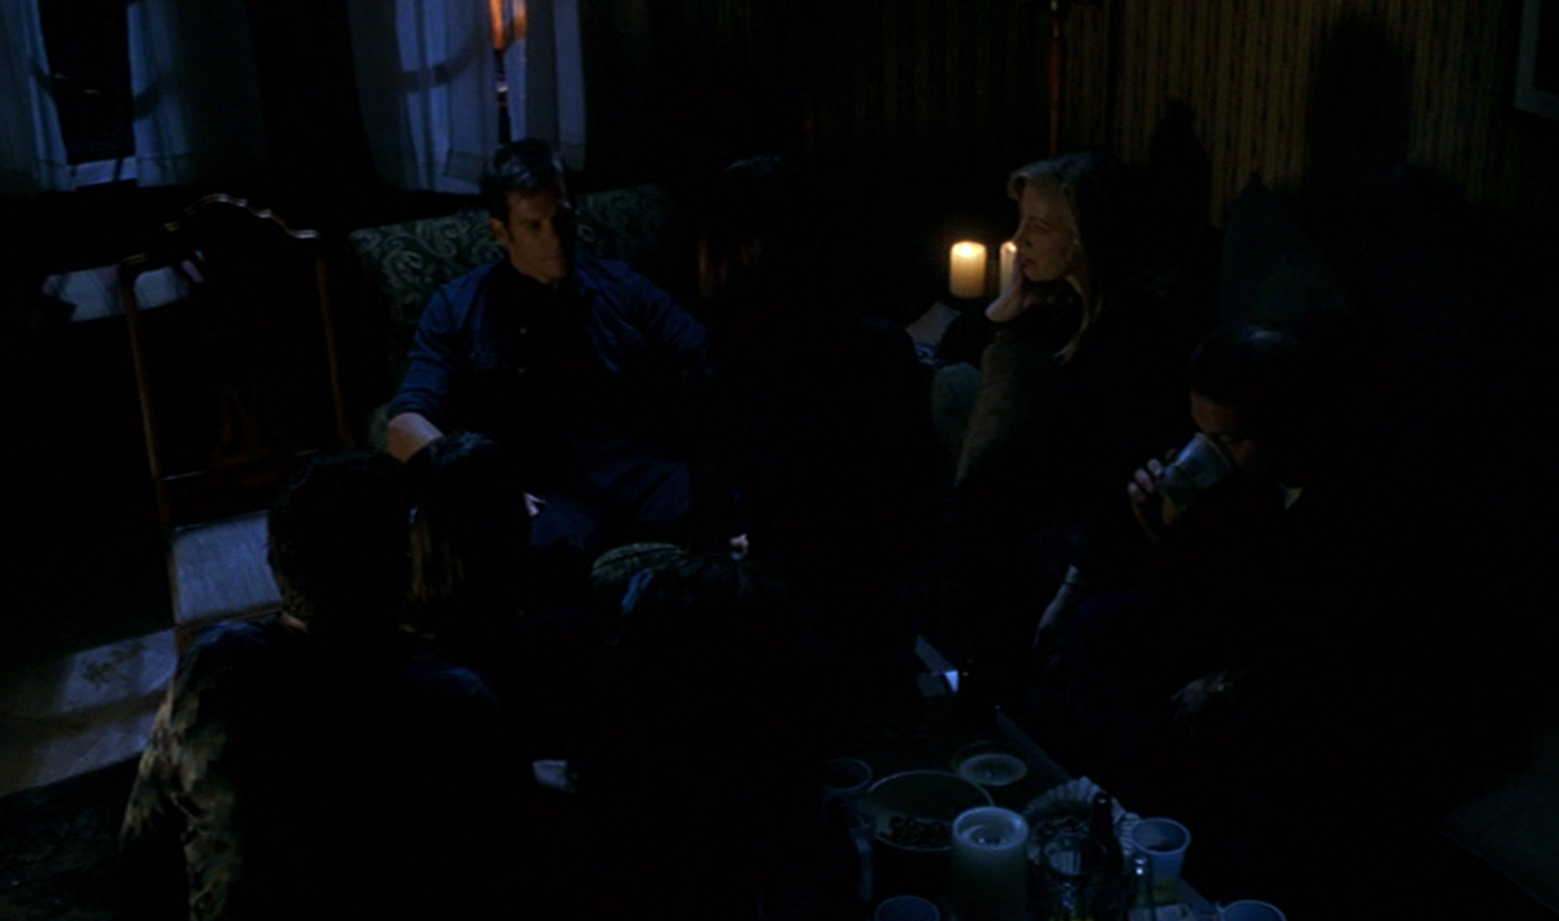 overhead shot of the room during the hypnosis scene in Stir of Echoes